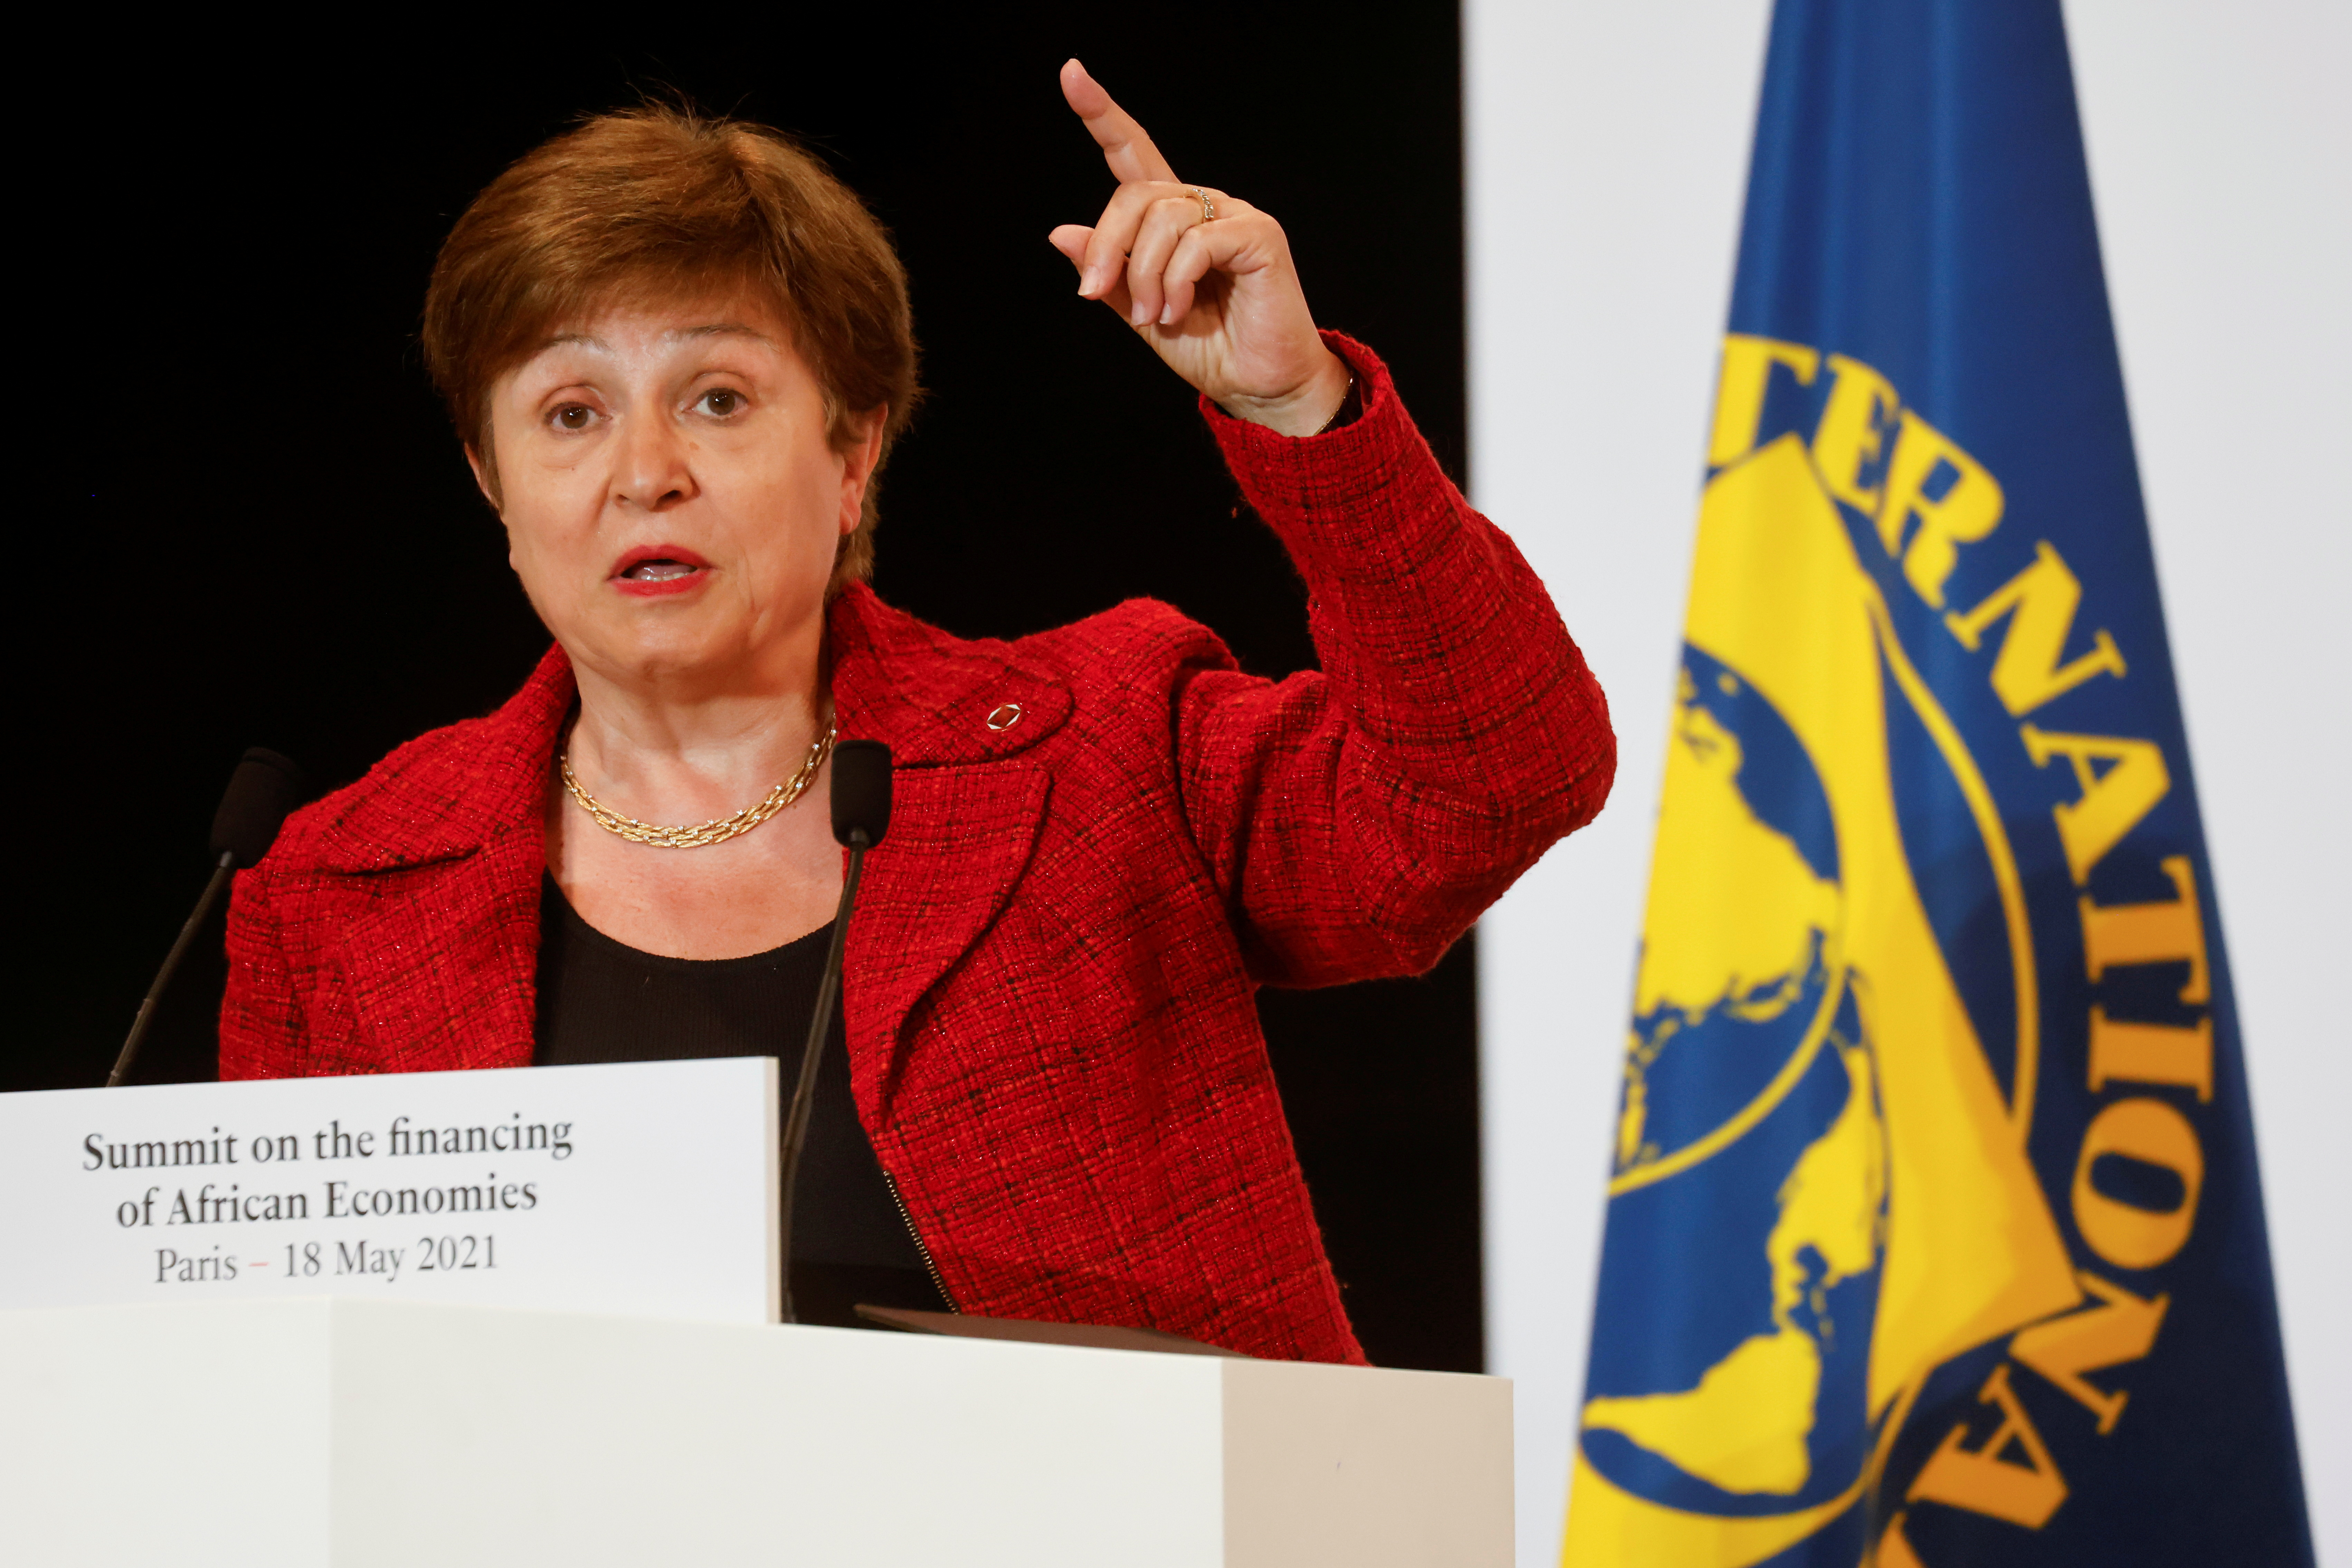 International Monetary Fund (IMF) Managing Director Kristalina Georgieva speaks during a joint news conference at the end of the Summit on the Financing of African Economies in Paris, France May 18, 2021. Ludovic Marin/Pool via REUTERS/File Photo